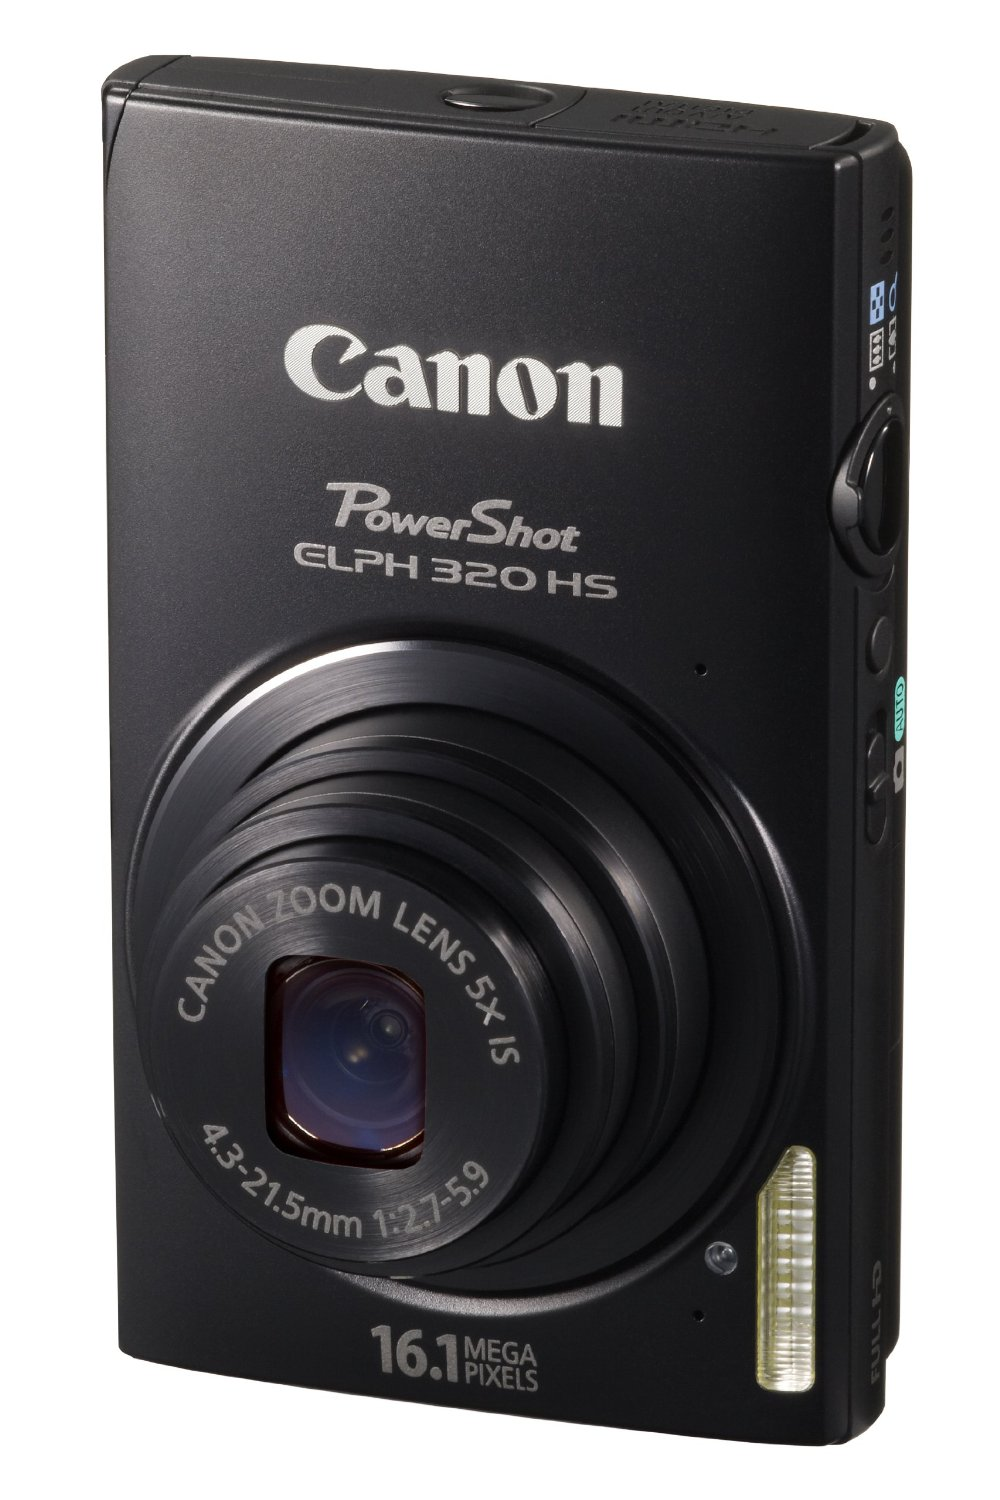 The Best Shopping For You Canon Powershot Elph 320 Hs 16